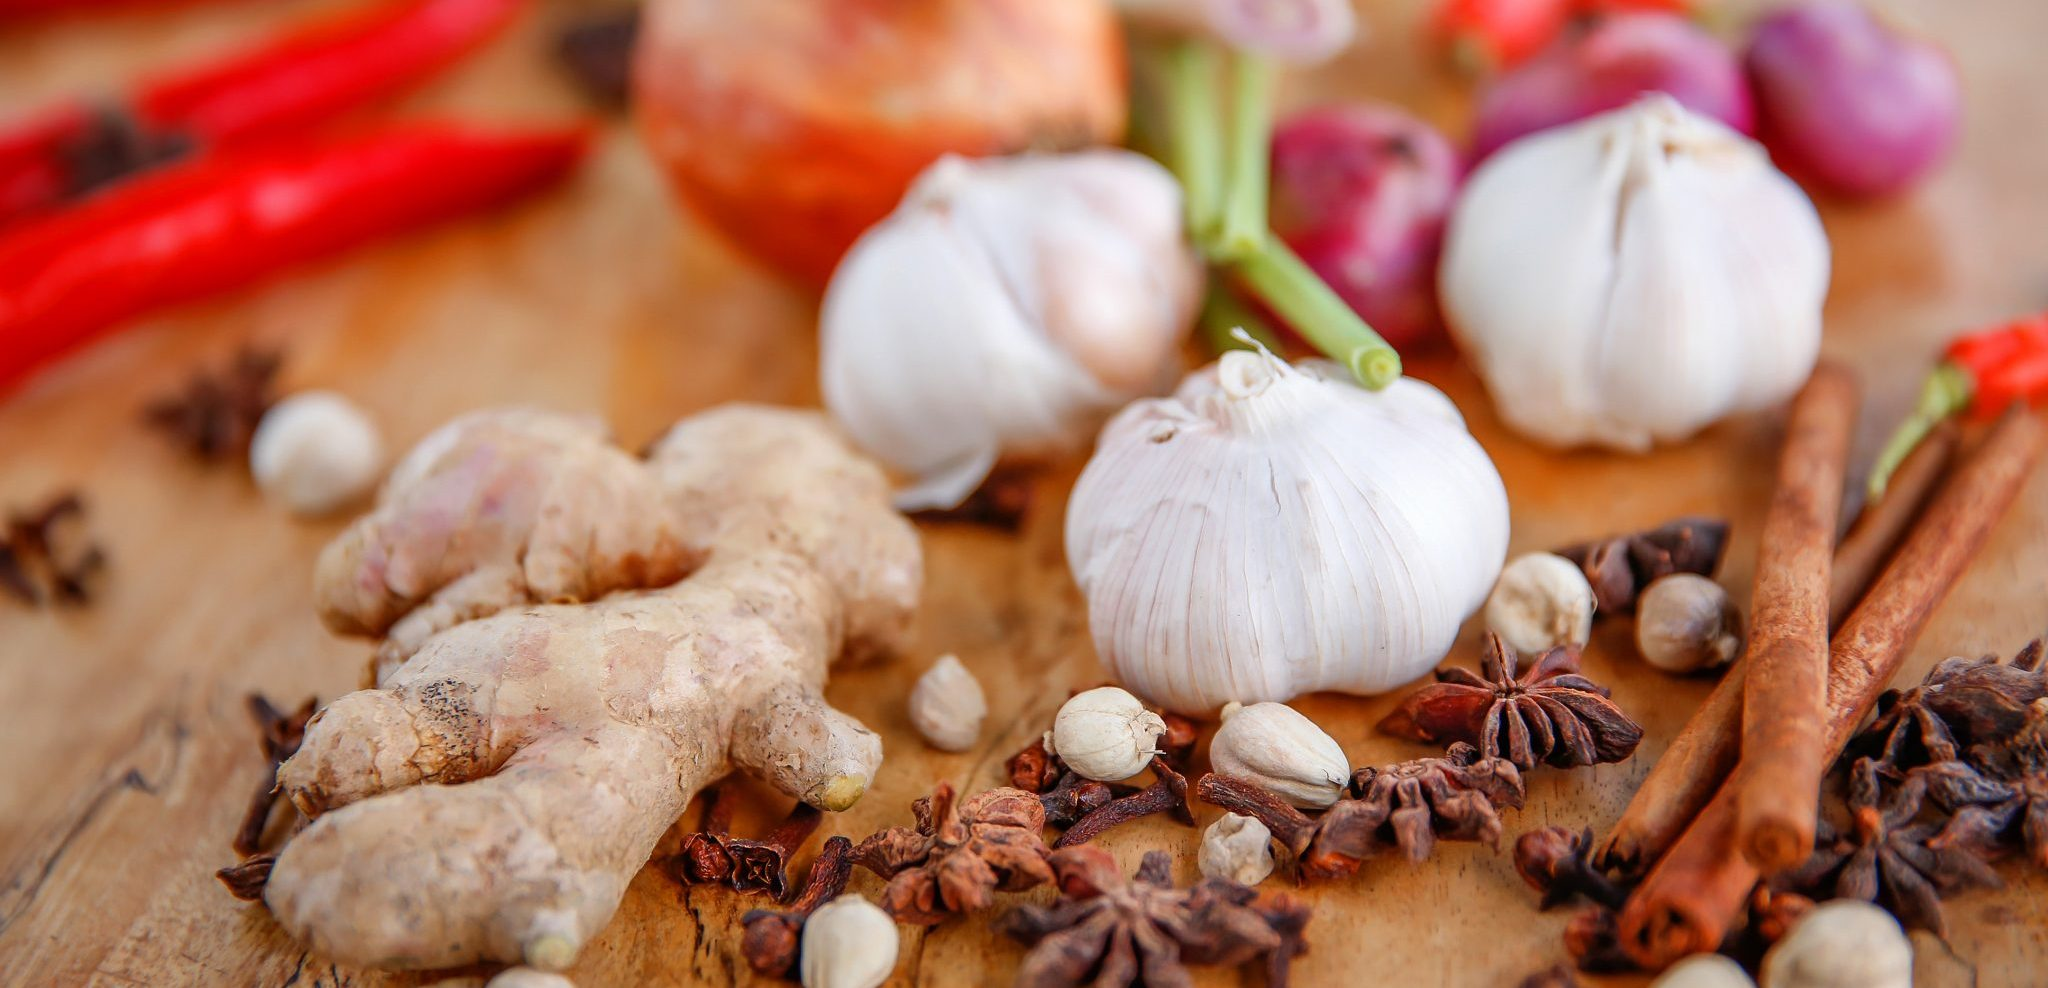 Natural Antibiotics that You May Find in Your Own Kitchen